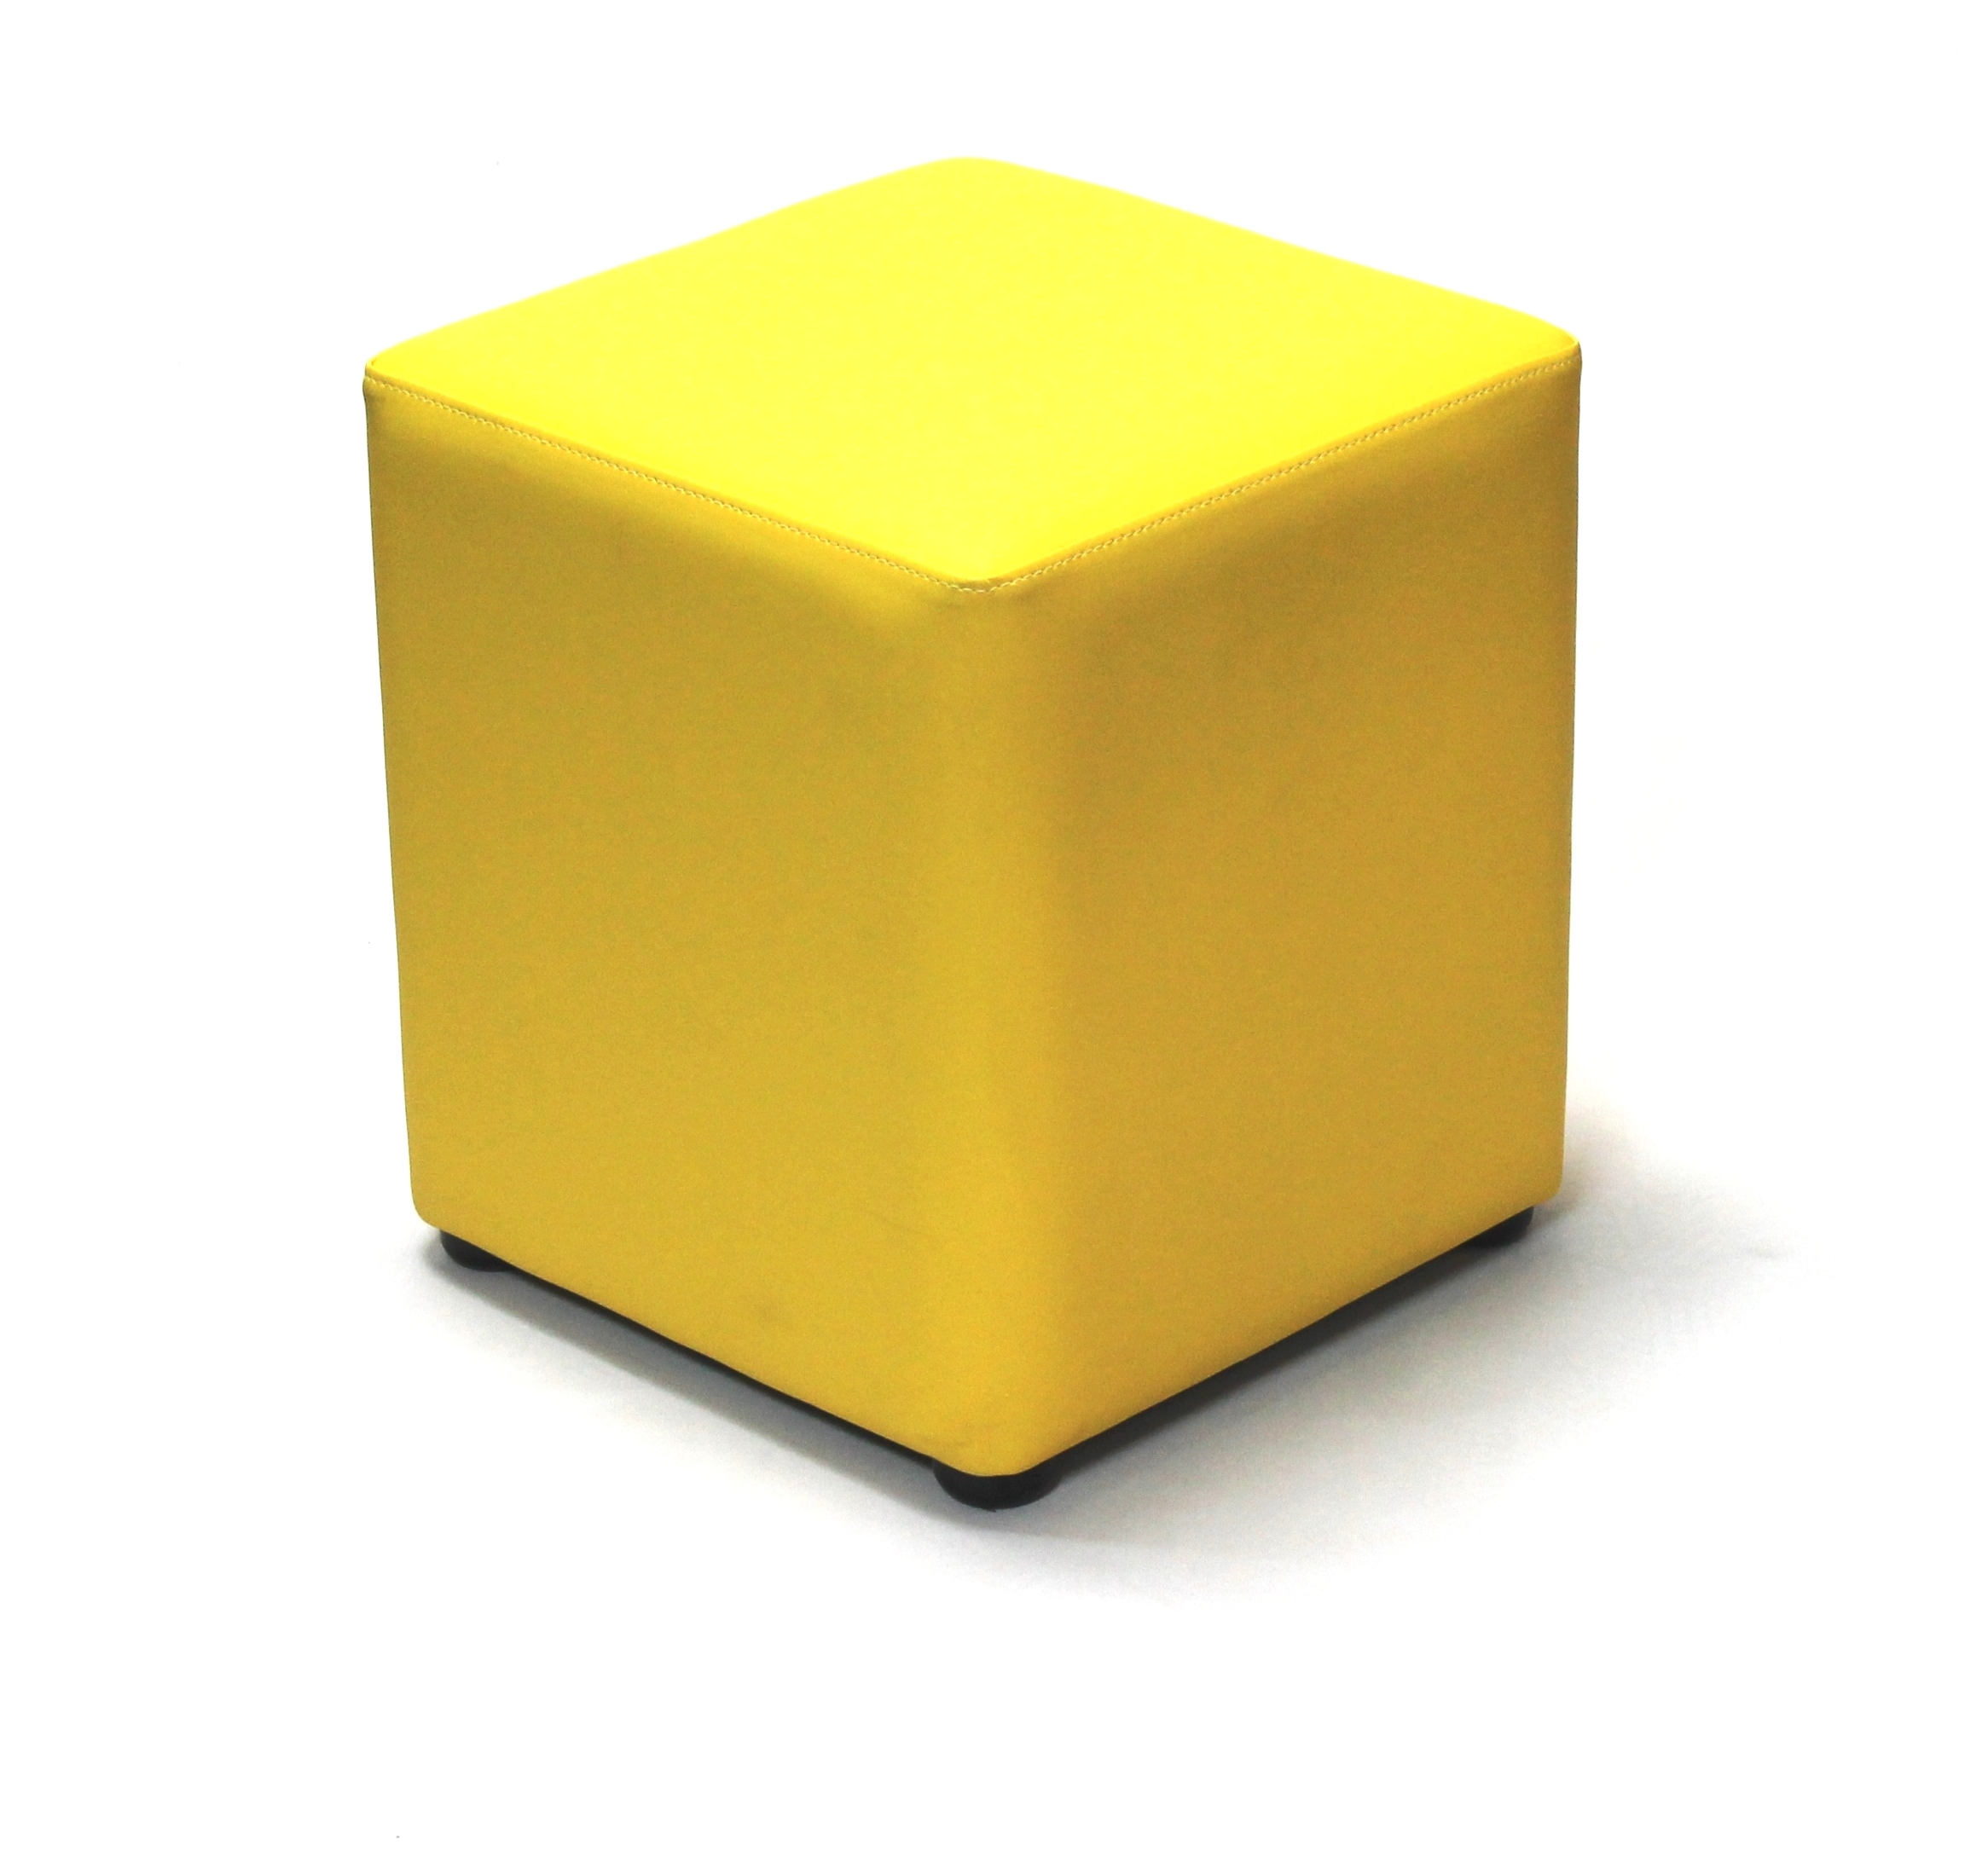 Cube Stool Distinction Furniture